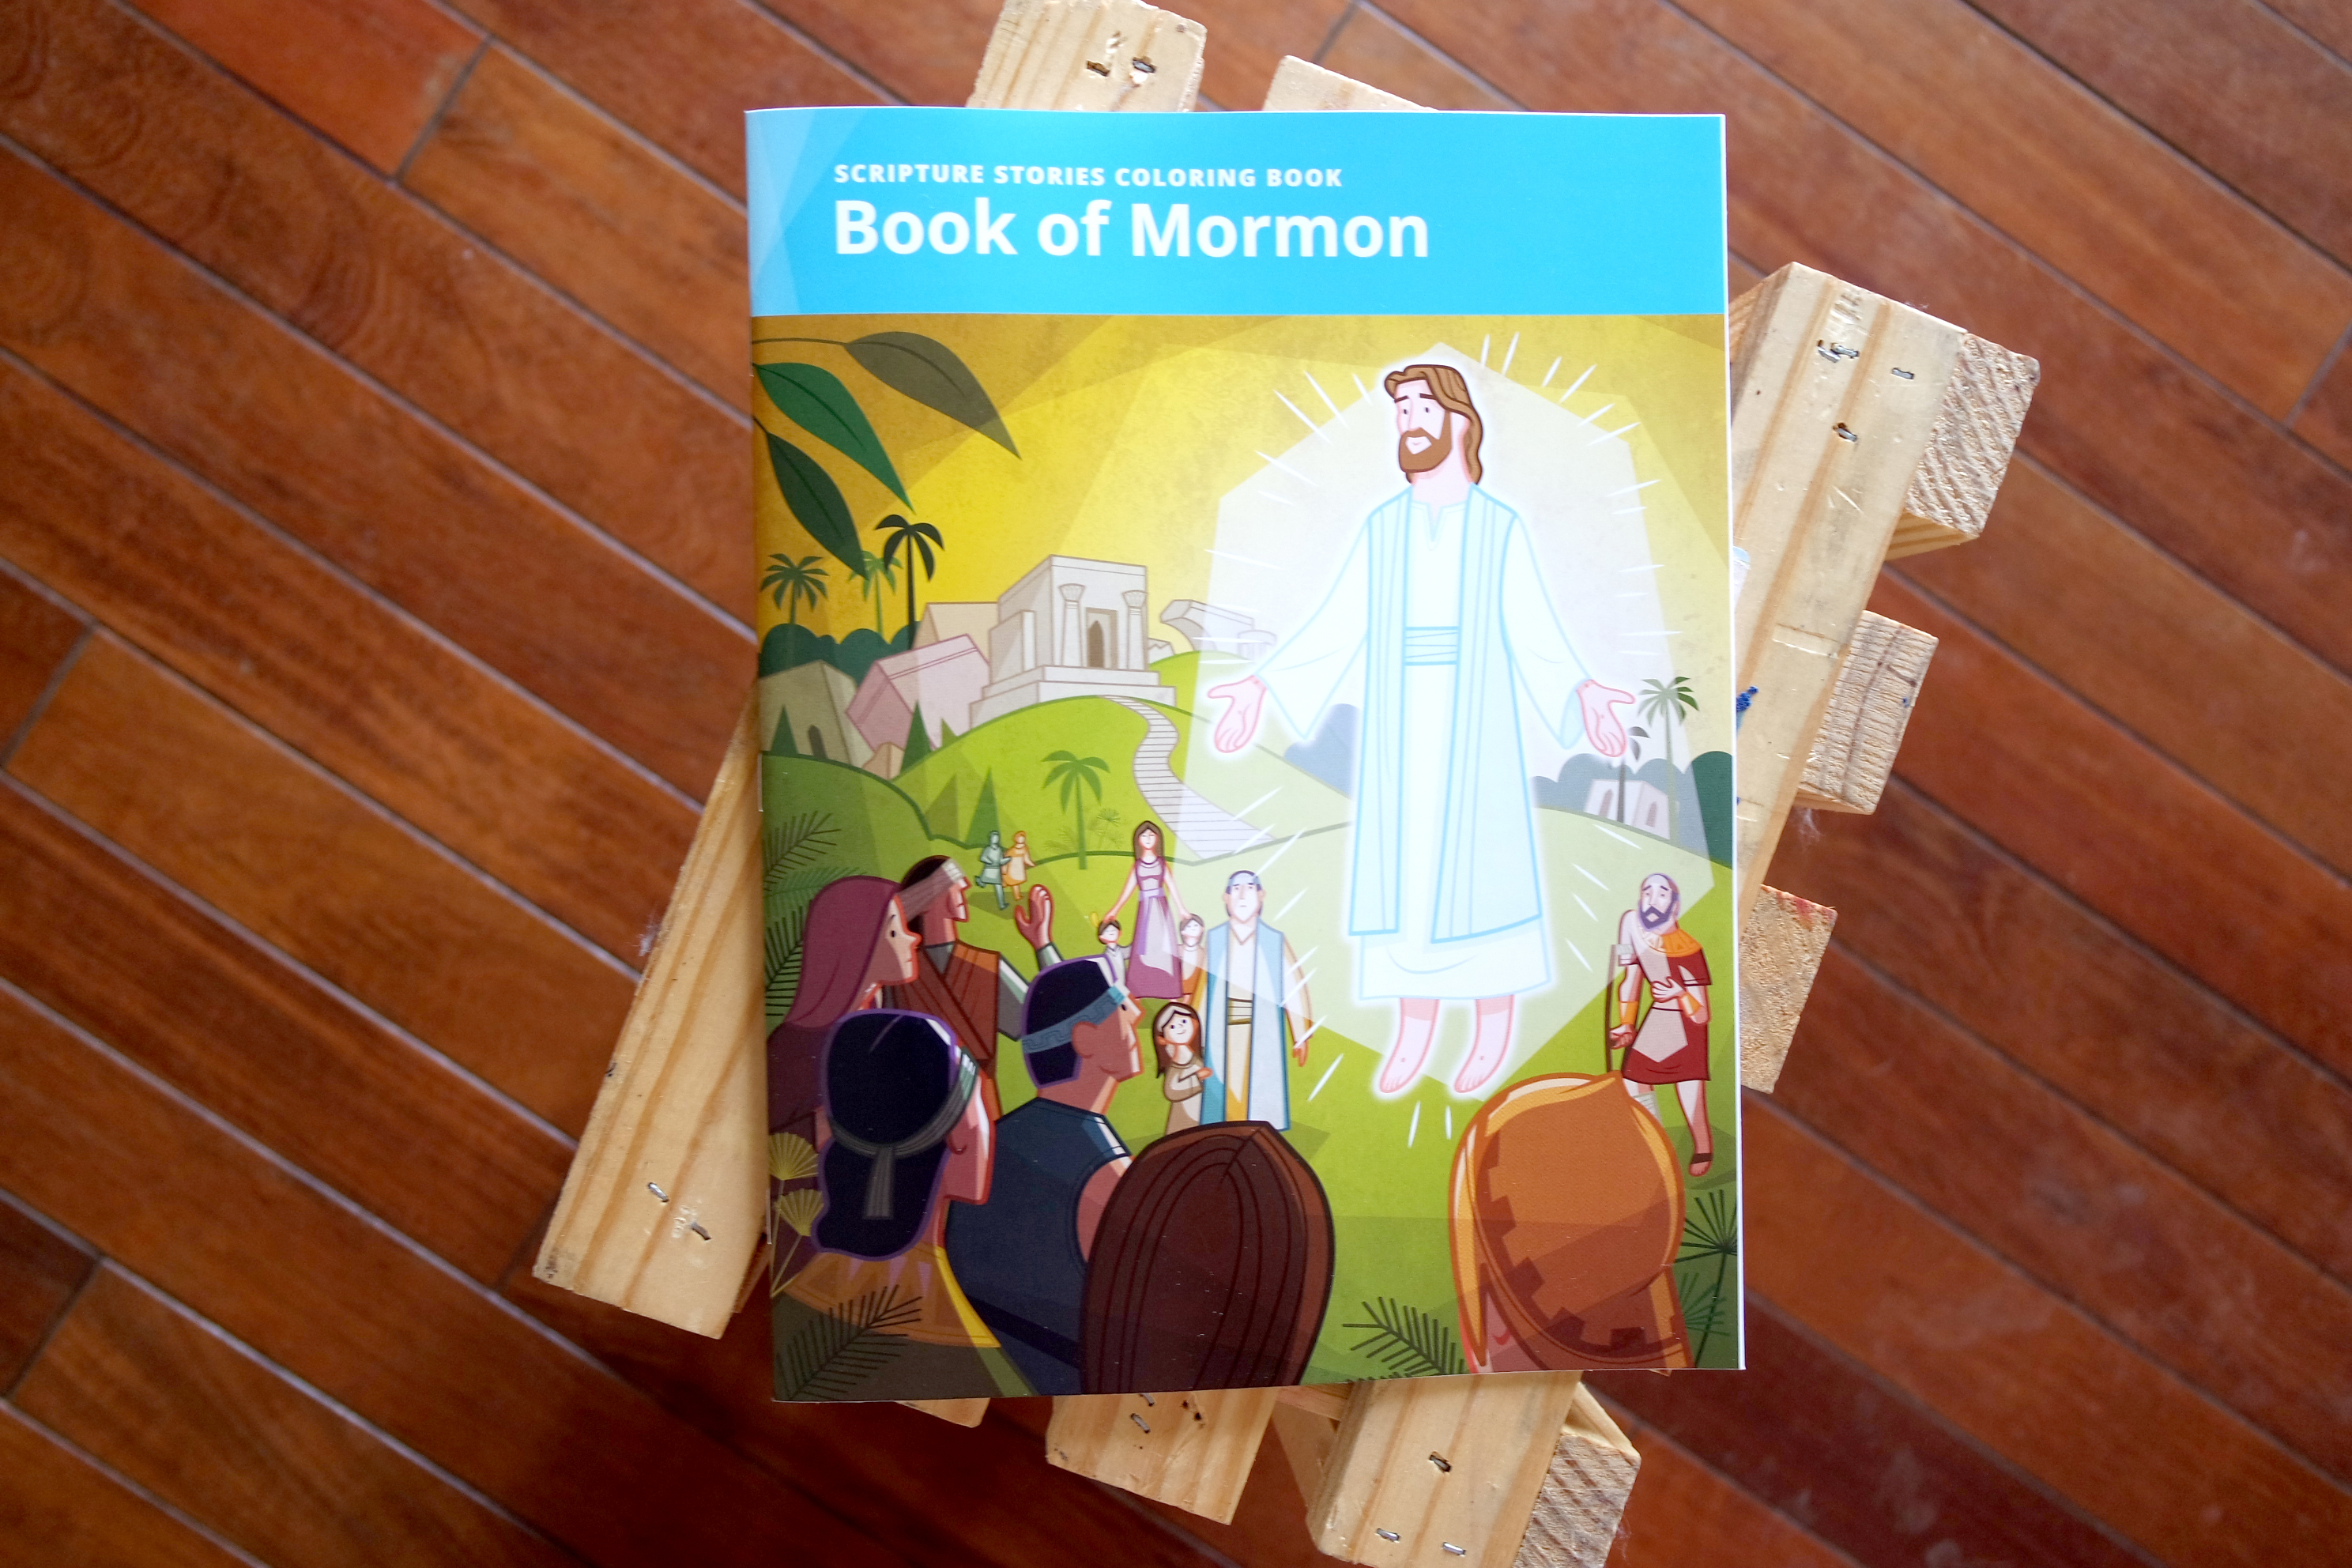 Lds Coloring Pages Pdf : Church coloring books help families have fun with scripture stories